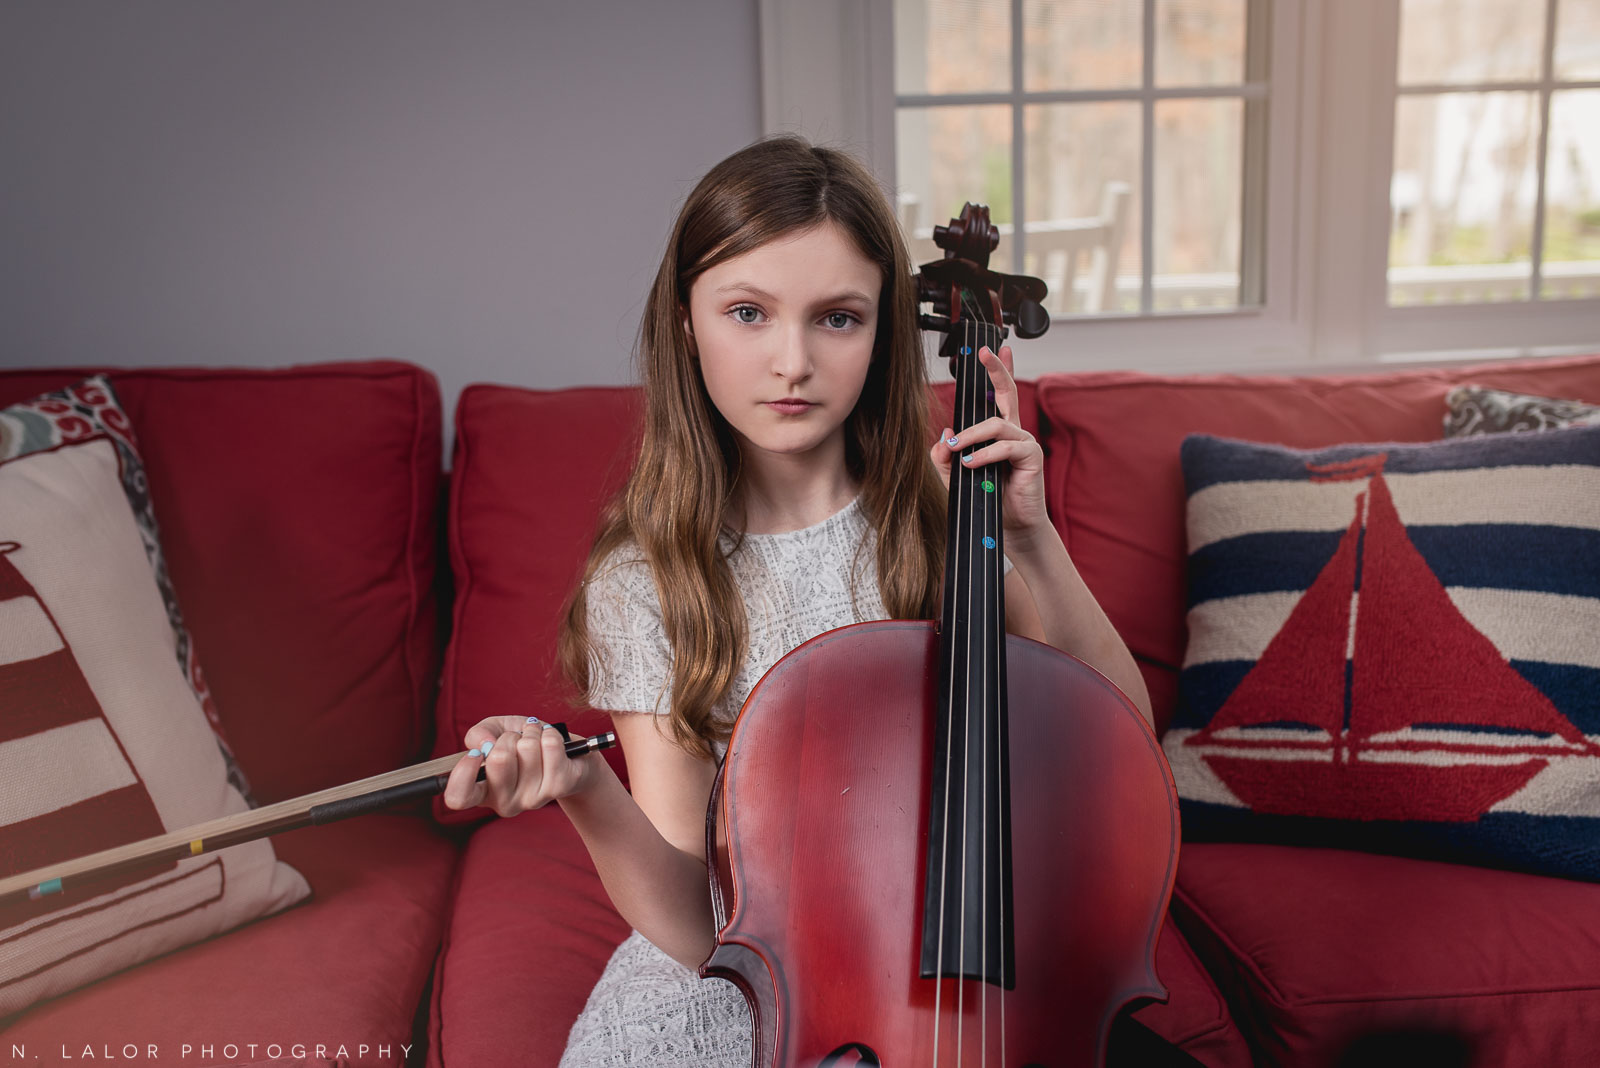 Portrait of a tween girl with her cello. Editorial-style photo by N. Lalor Photography. Darien, CT.